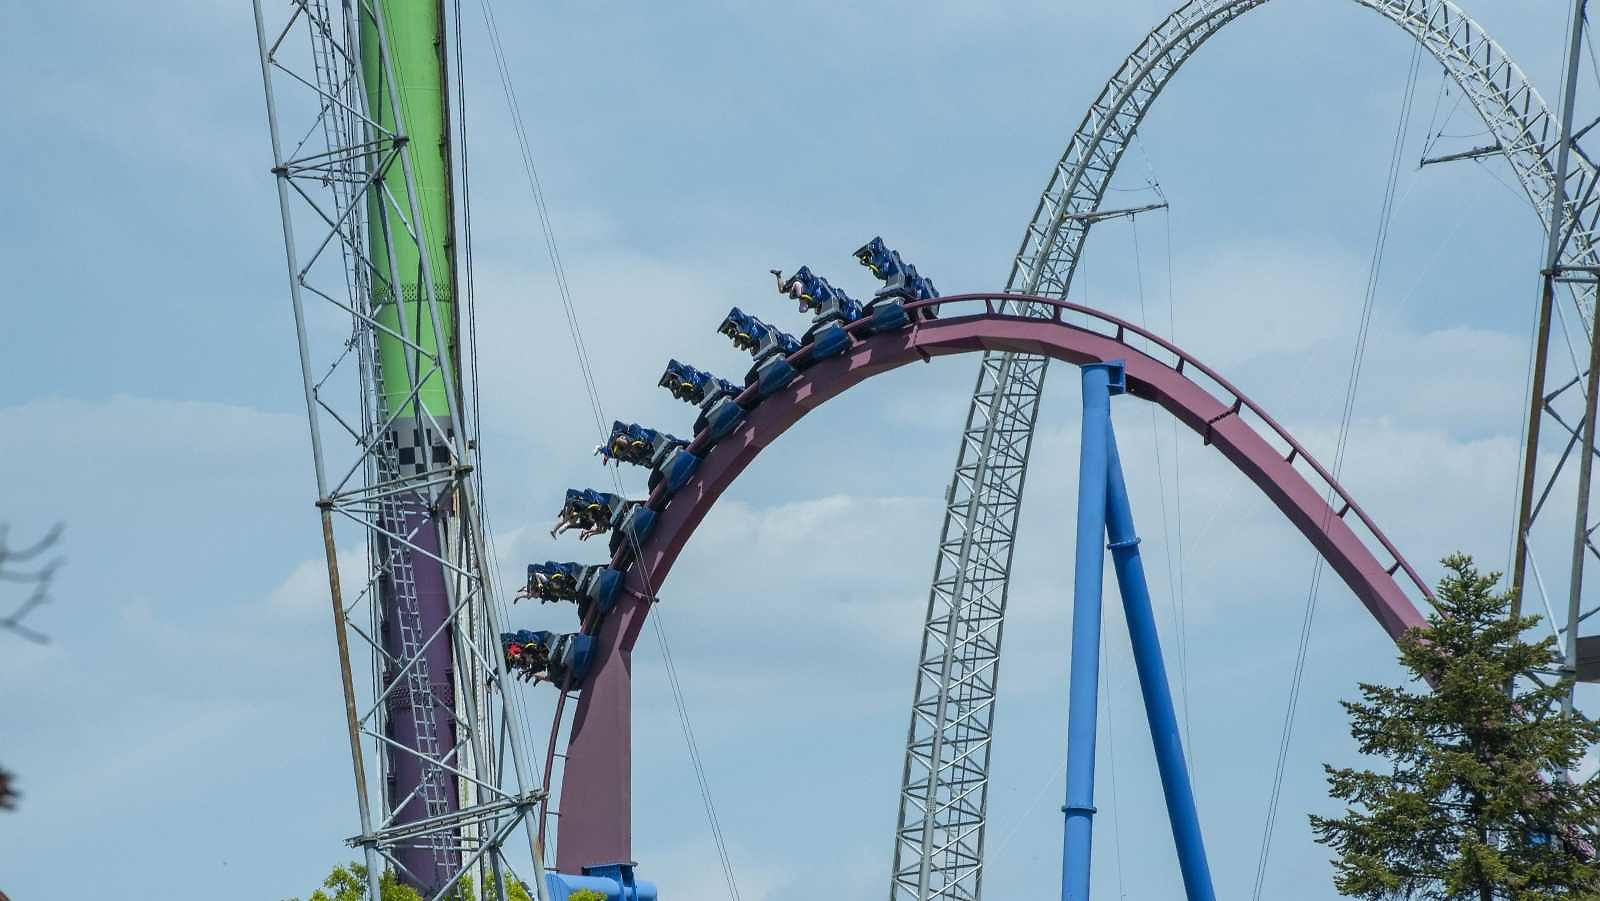 'It Felt Rough': Fights and Unruly Guests Prompt Early Closing of Kings Island Saturday